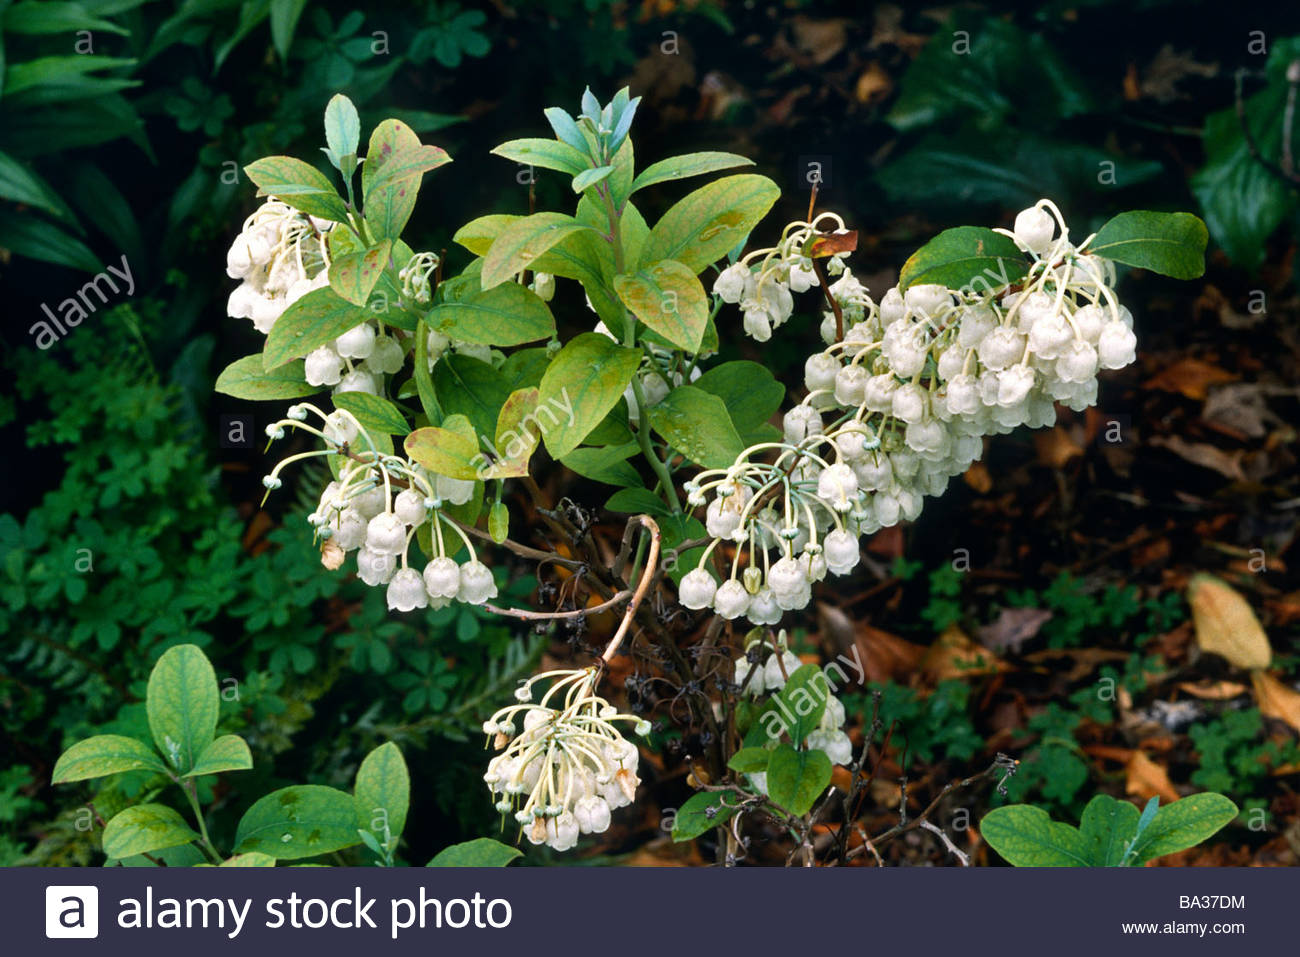 Best bush with small white bell shaped flowers photos wedding and cool bush with small white bell shaped flowers pictures inspiration mightylinksfo Images